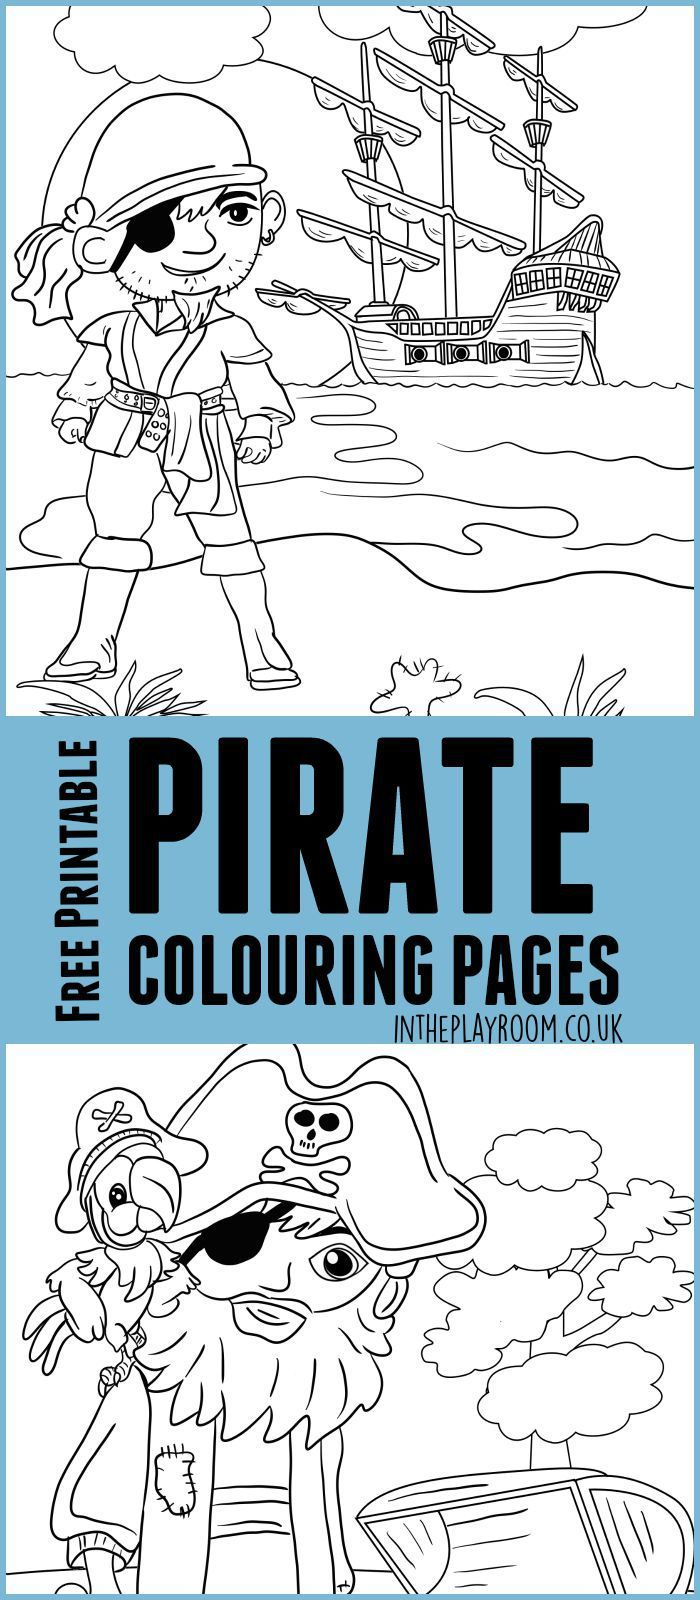 pirate coloring pages elementary - photo#32